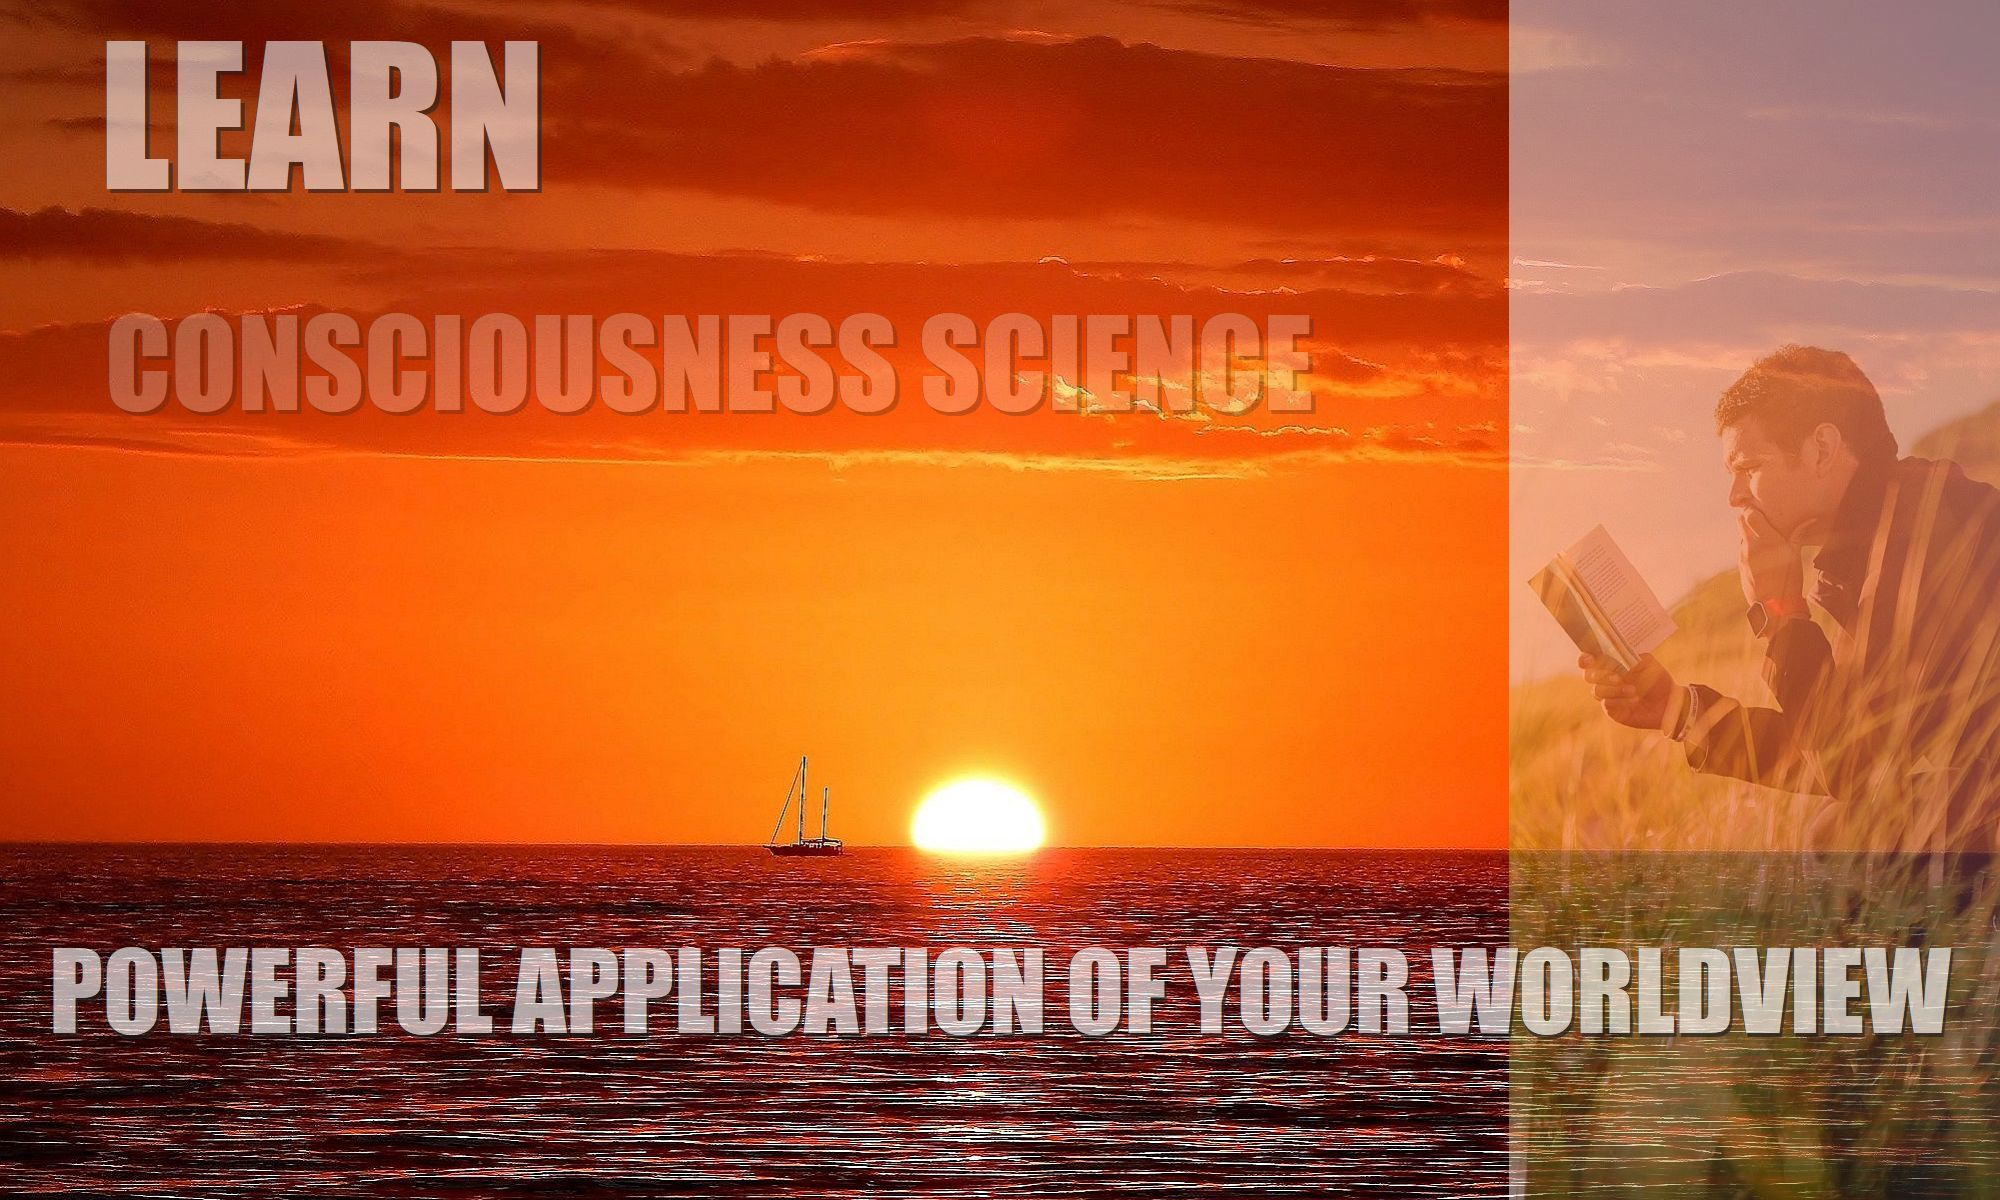 How-do-i-apply-consciousness-science-principles-make-conscious-co-creation-work-2000